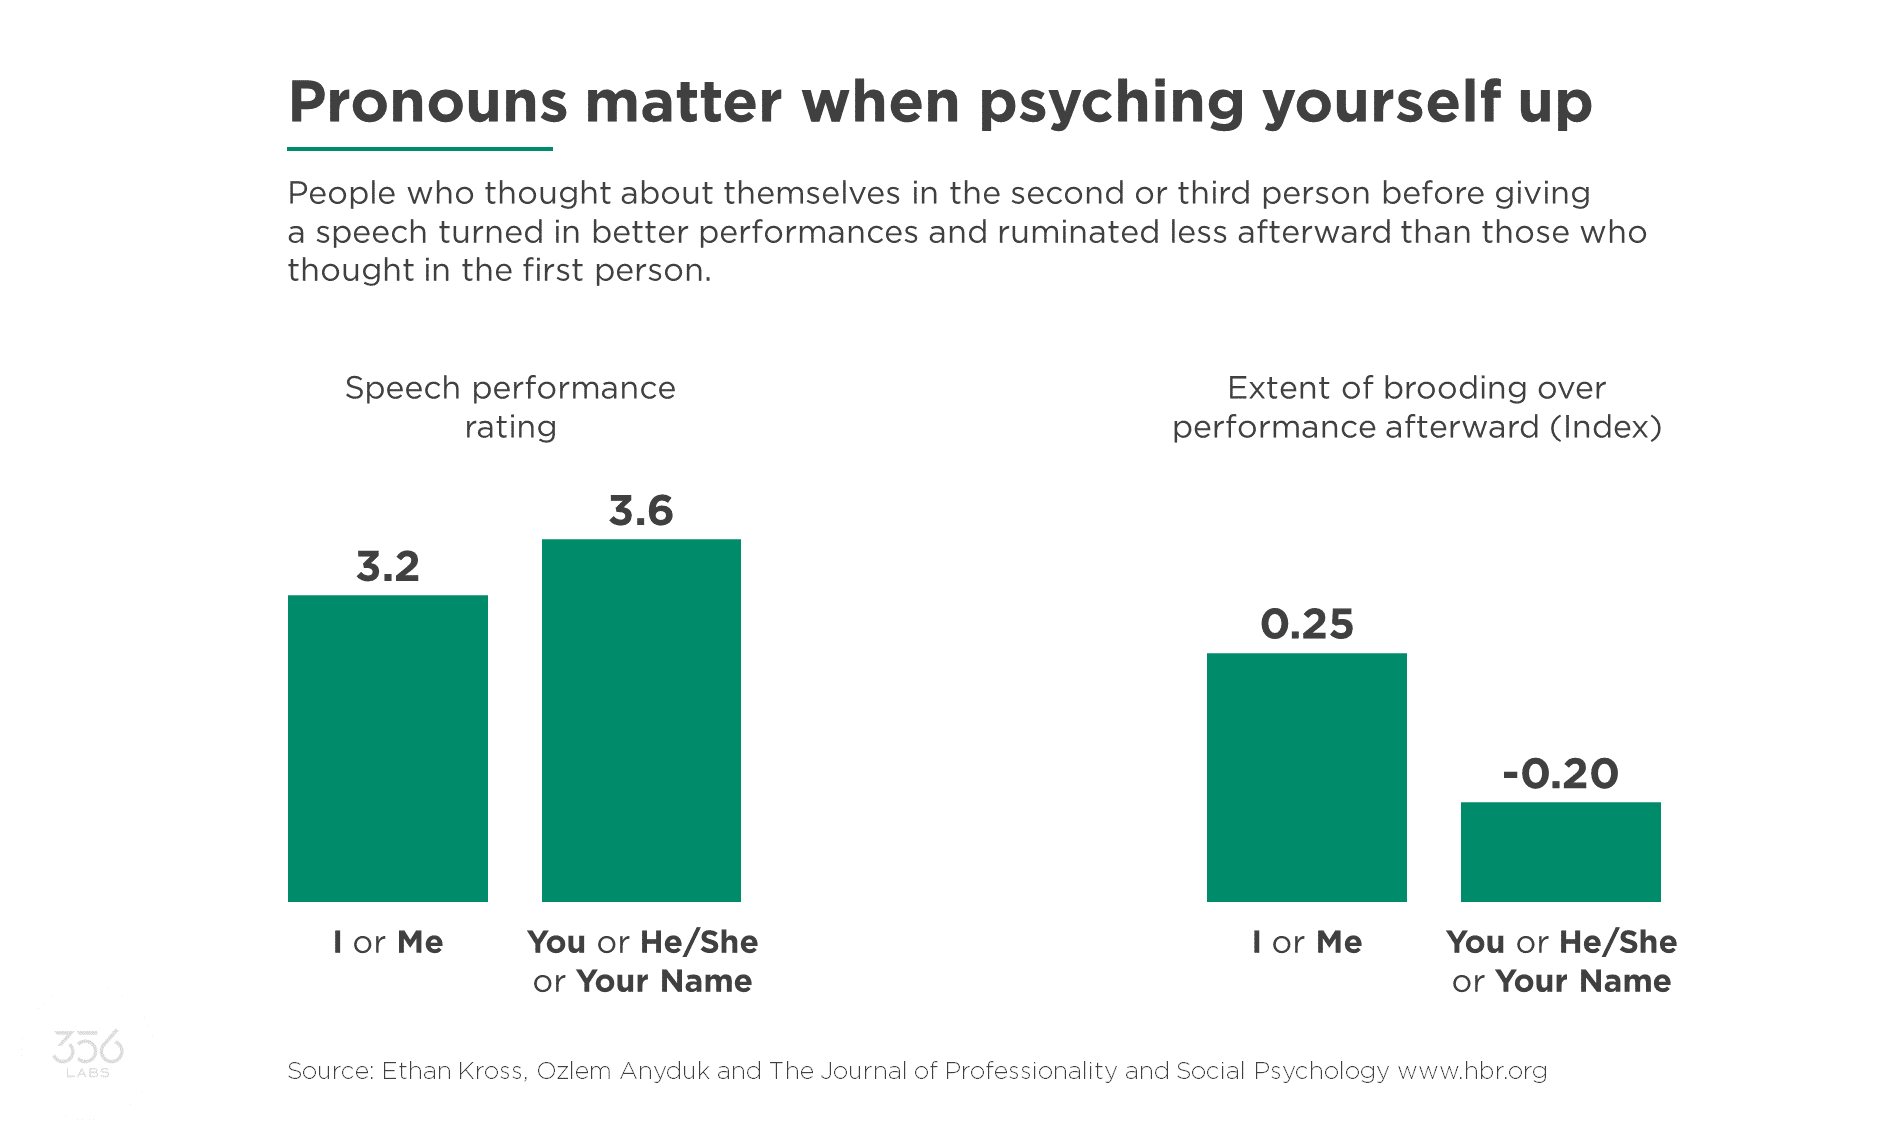 А Chart explaining why pronouns matter when psyching yourself up